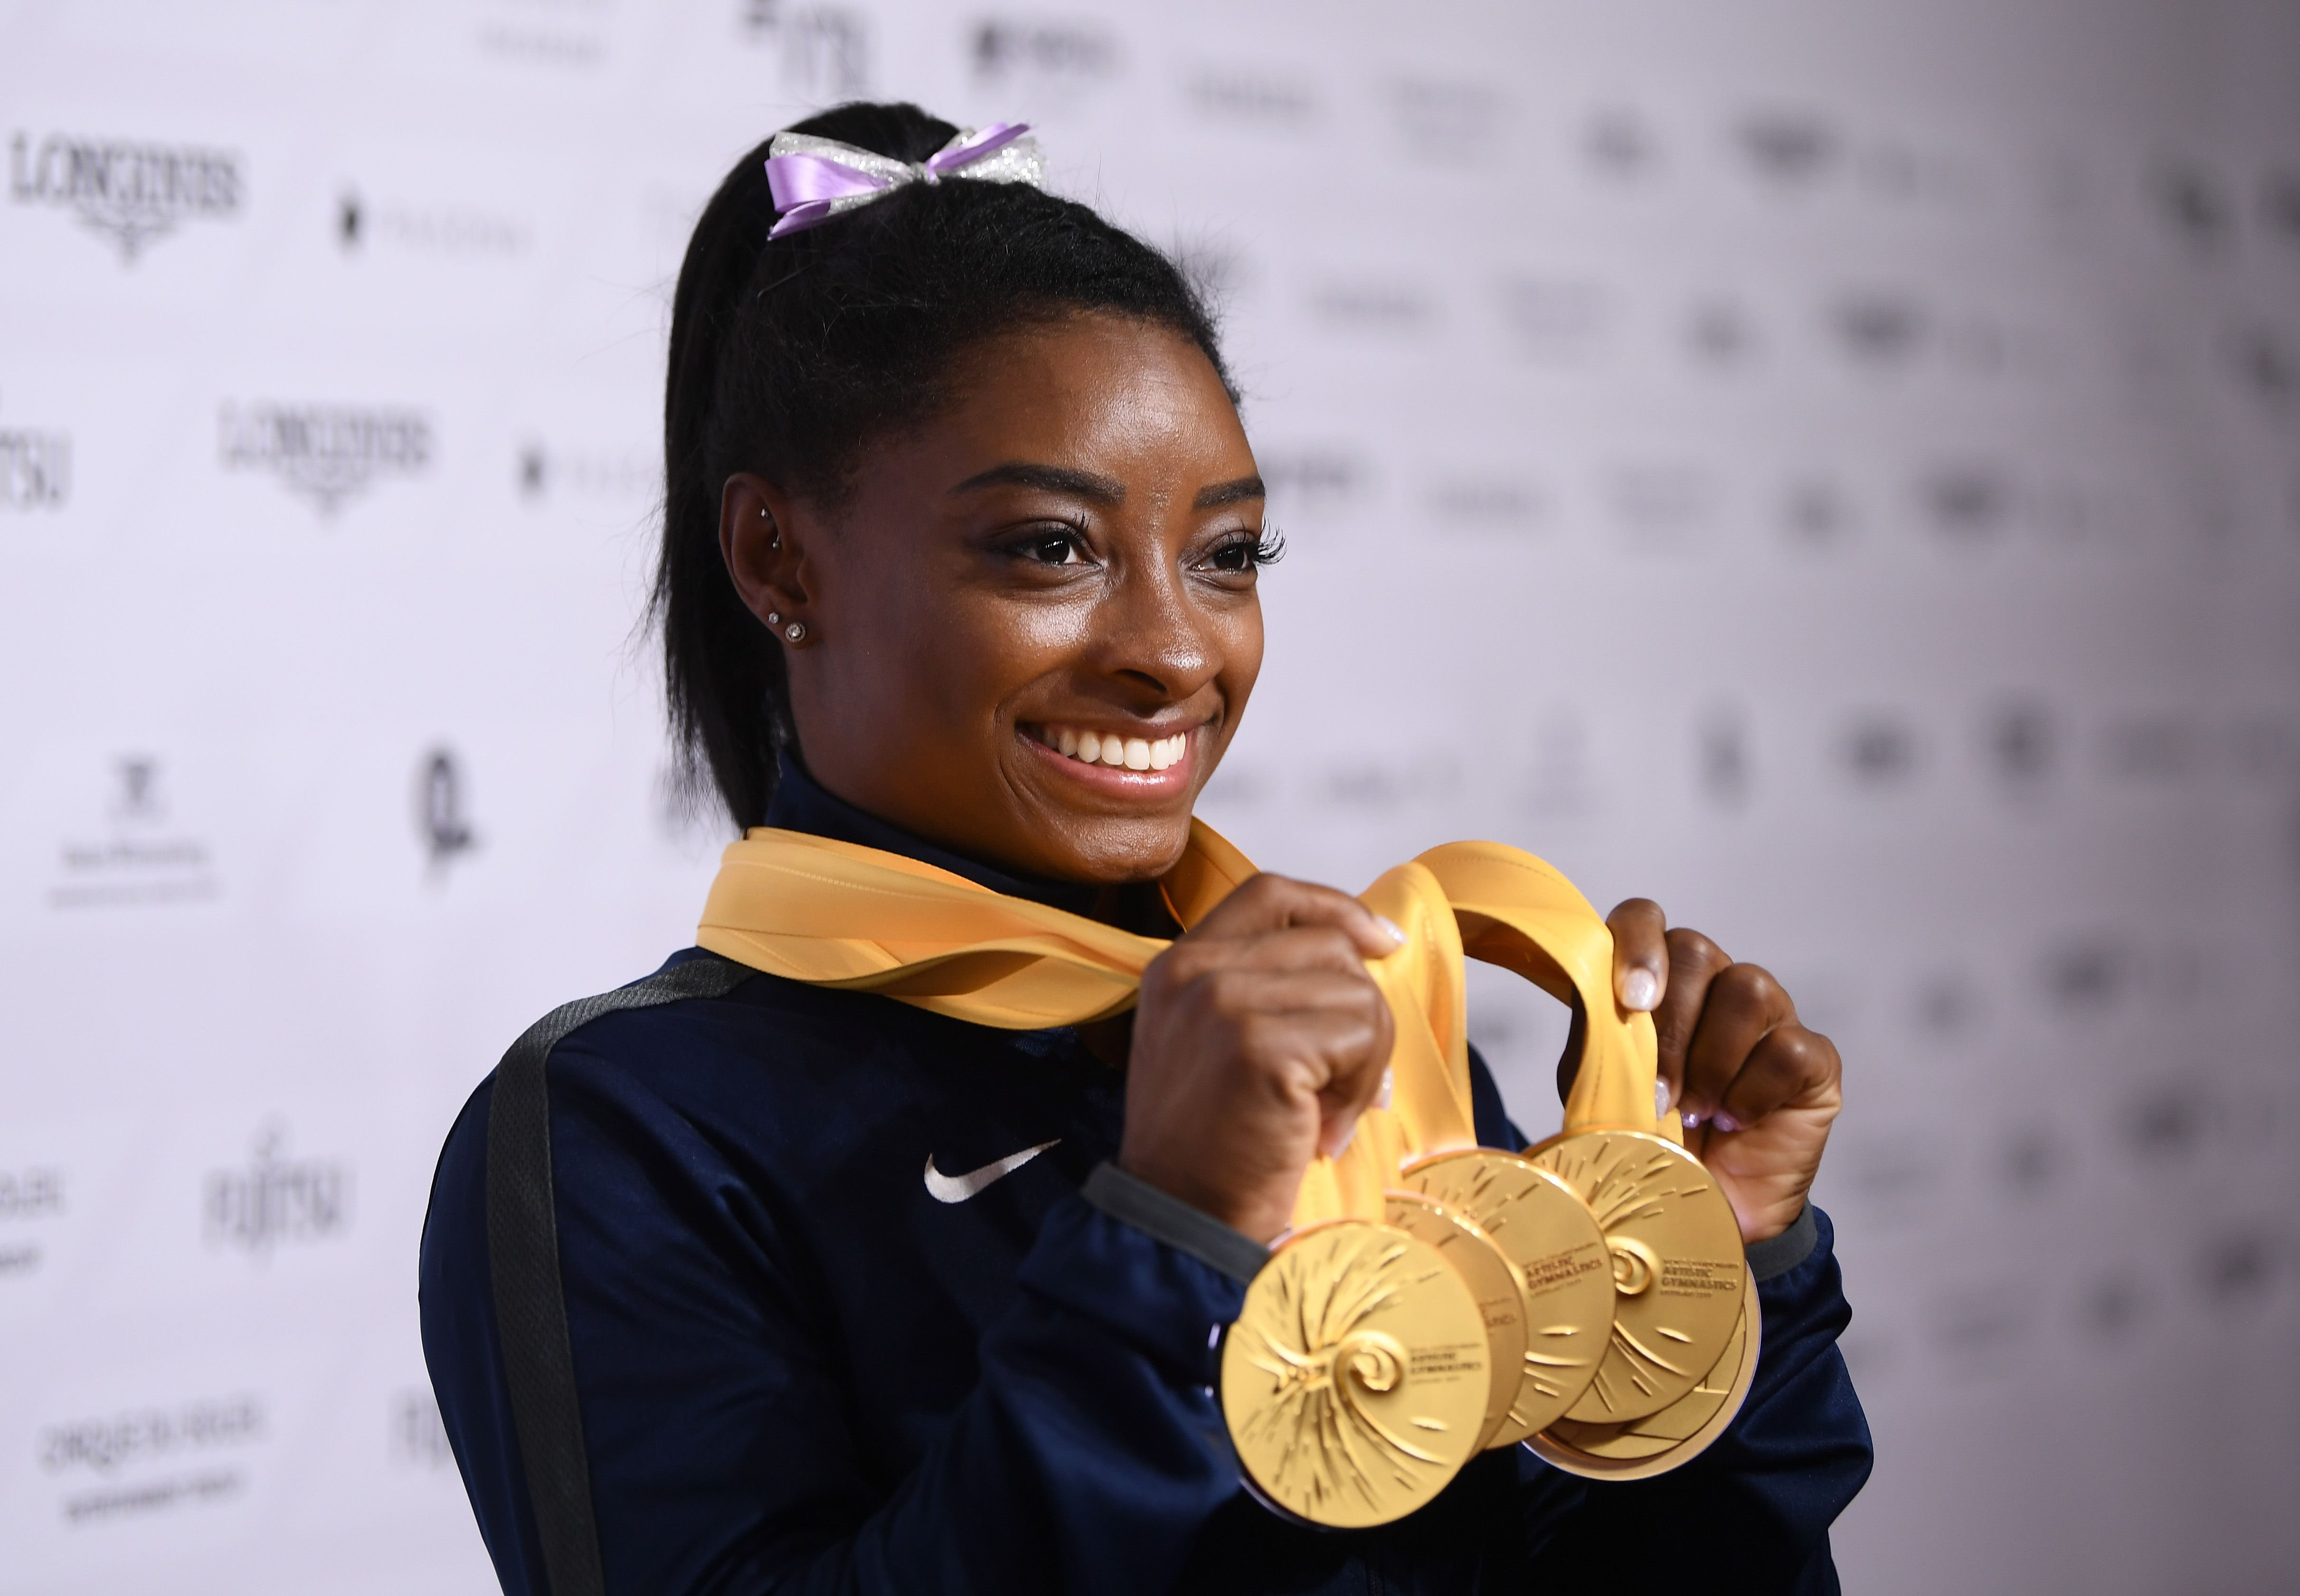 Simone Biles during the FIG Artistic Gymnastics World Championships on October 13, 2019 in Stuttgart, Germany. | Source: Getty Images